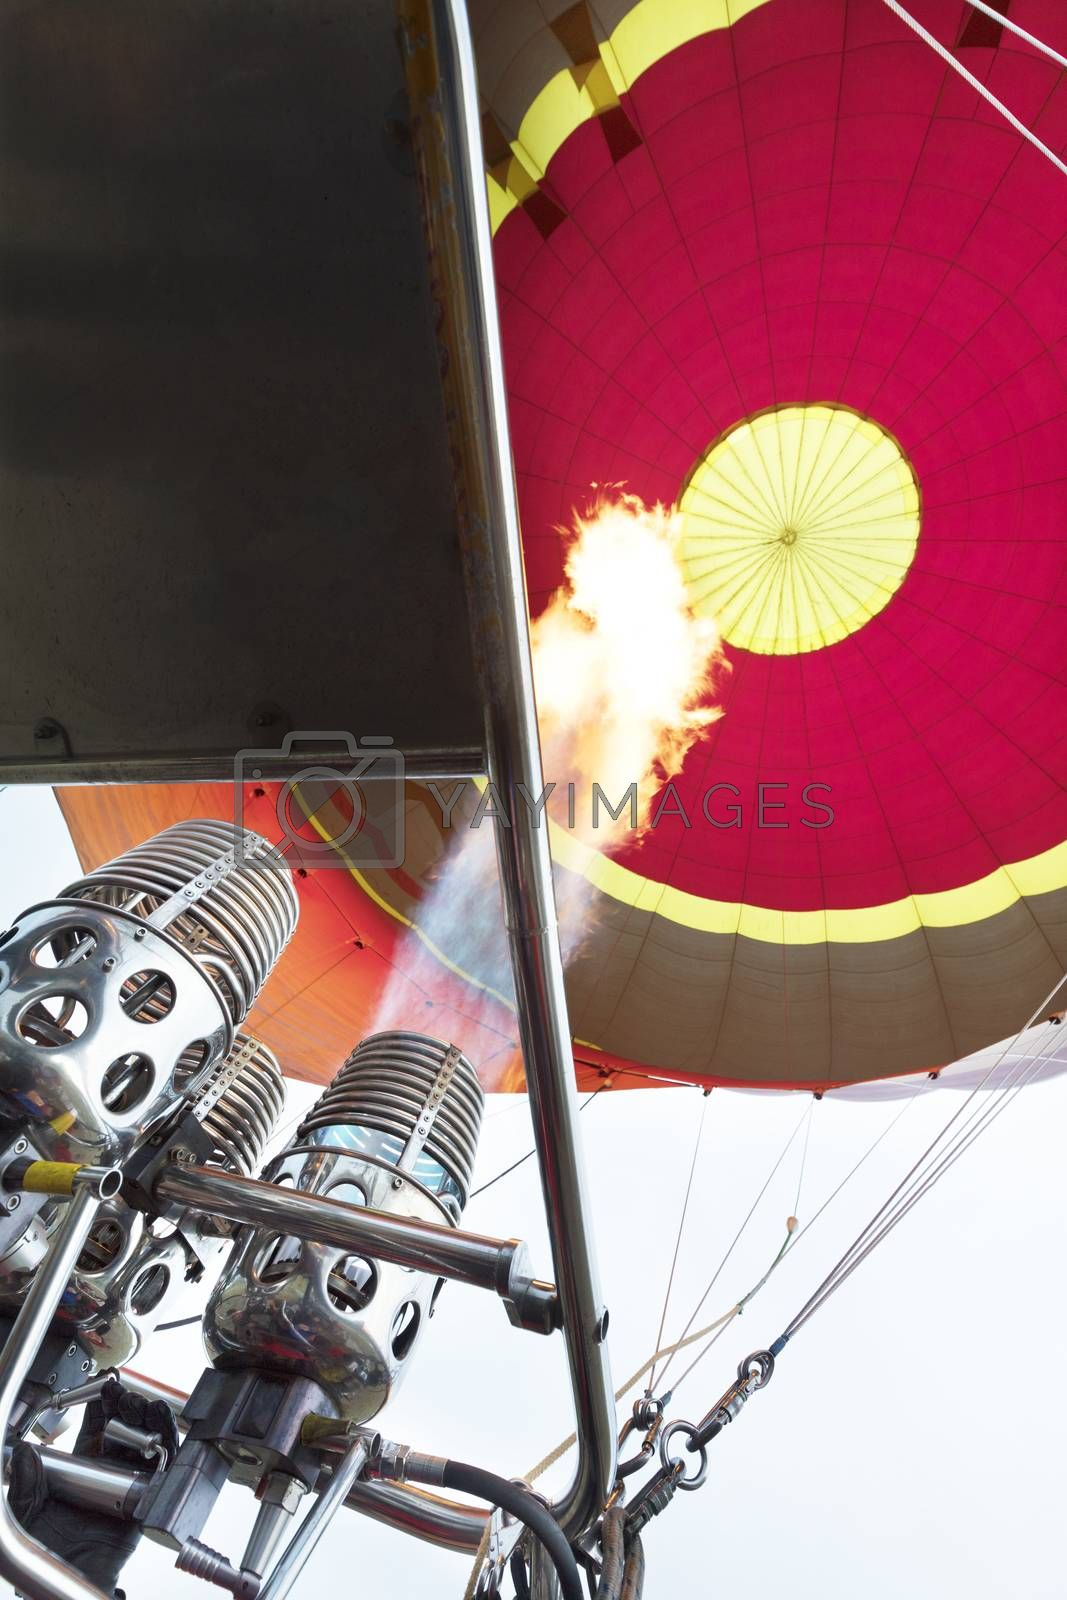 The balloon is blown inflate with fire from the torch, a long flame tongue.